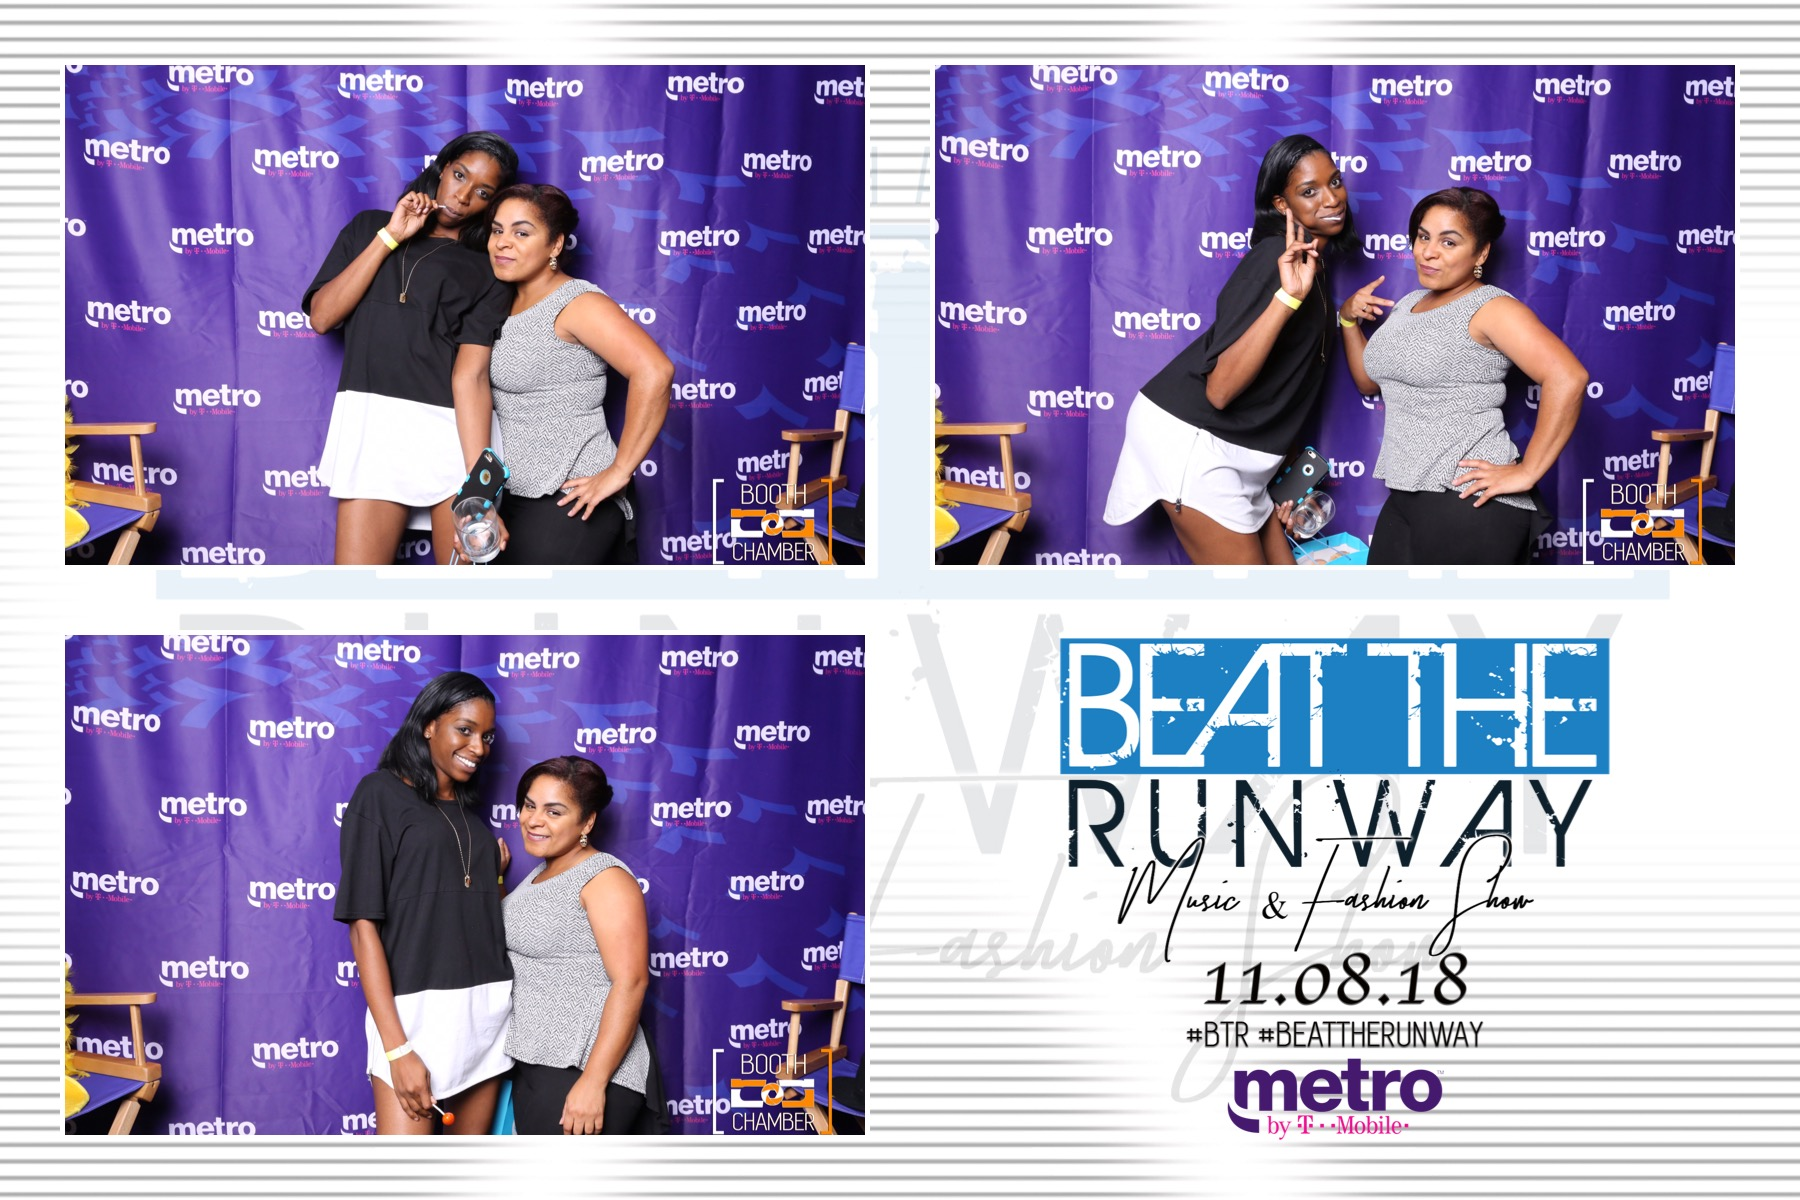 Booth Chamber Photo Booth Beat the Runway Antoine Hart 20181108_4.jpeg